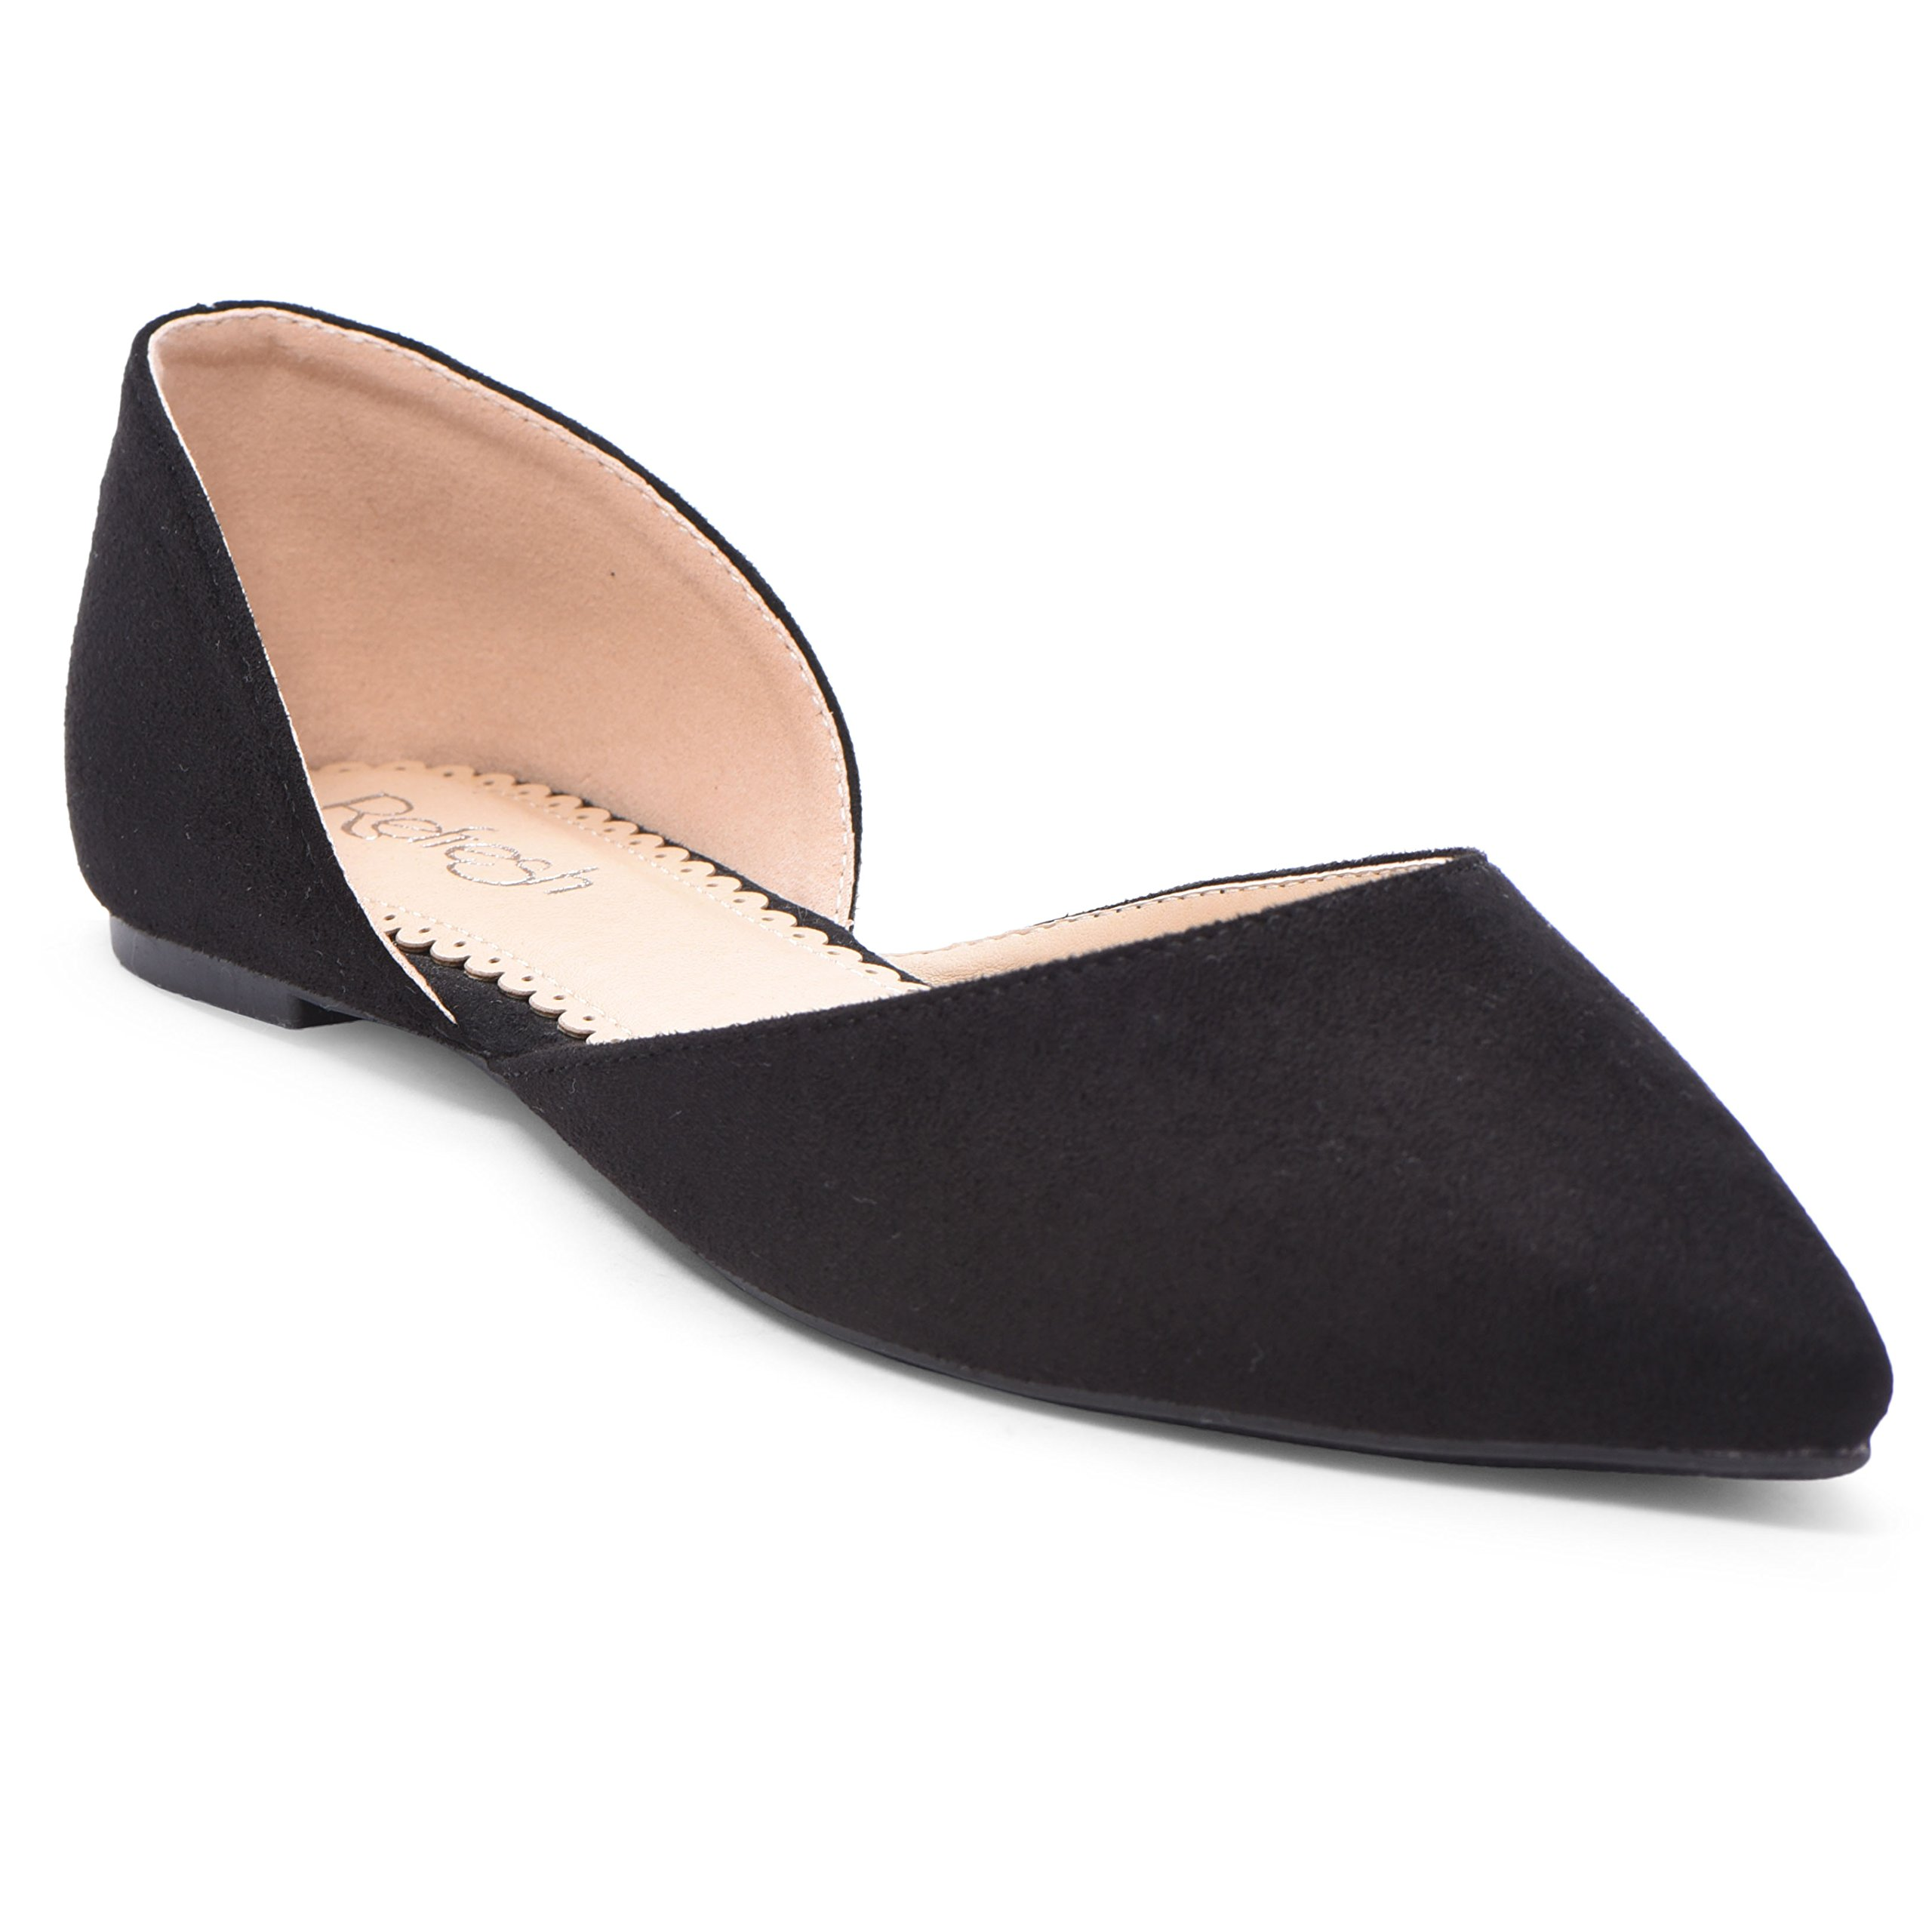 Women's Ballet Flat D'Orsay Comfort Light Pointed Toe Slip On Casual Shoes Black Suede 10